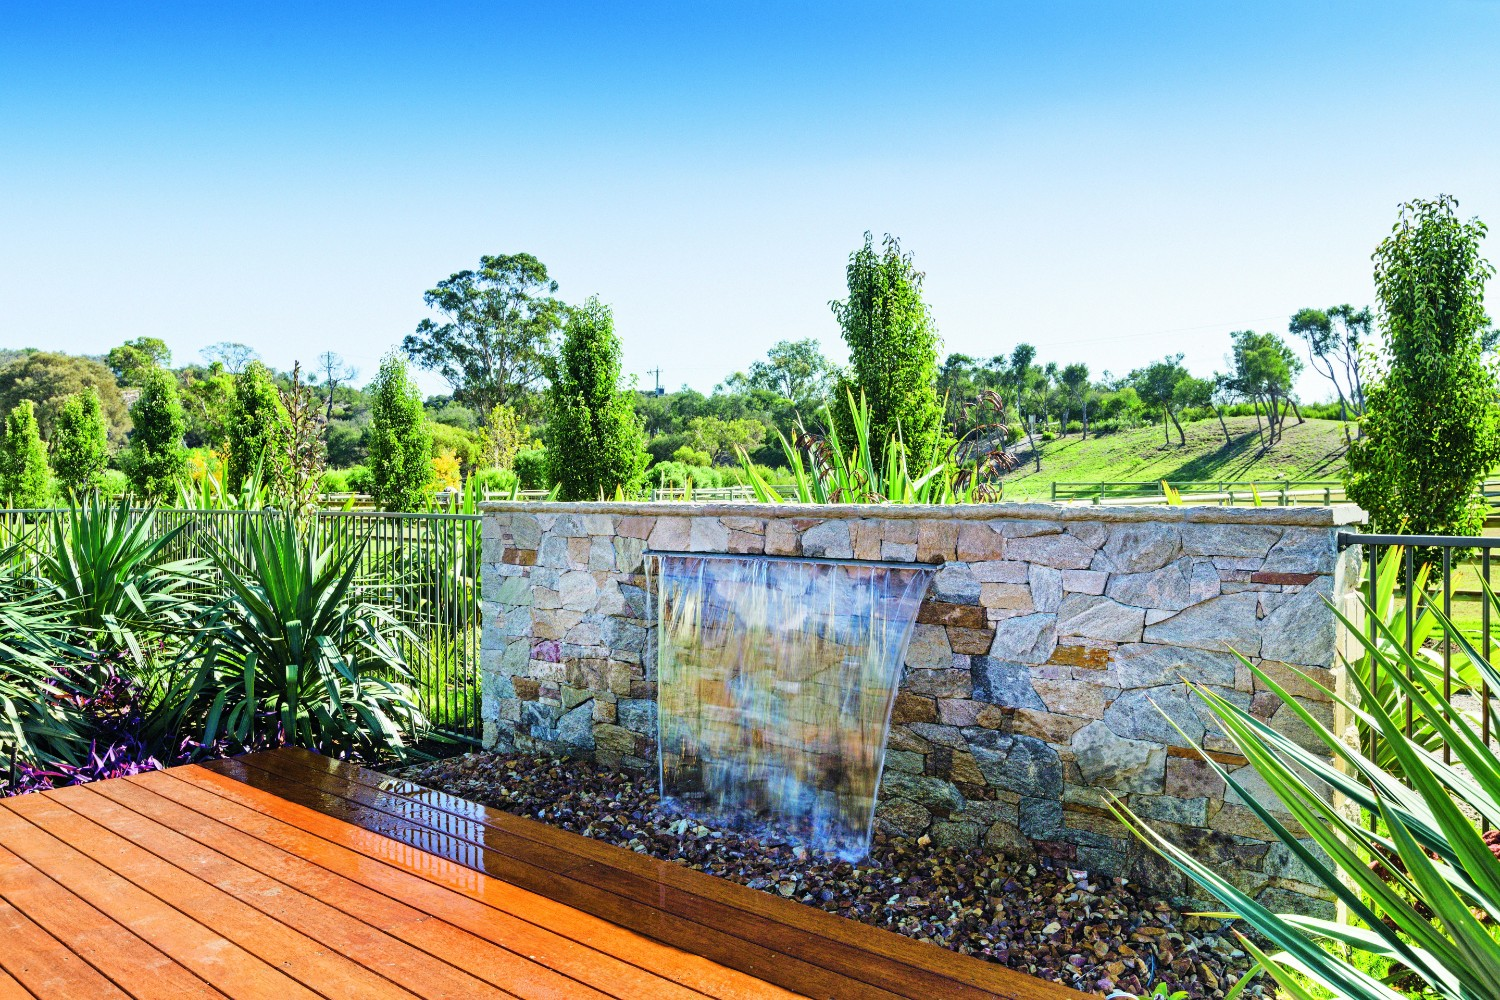 Country pool escape: rural tranquility - water feature adjacent to pool